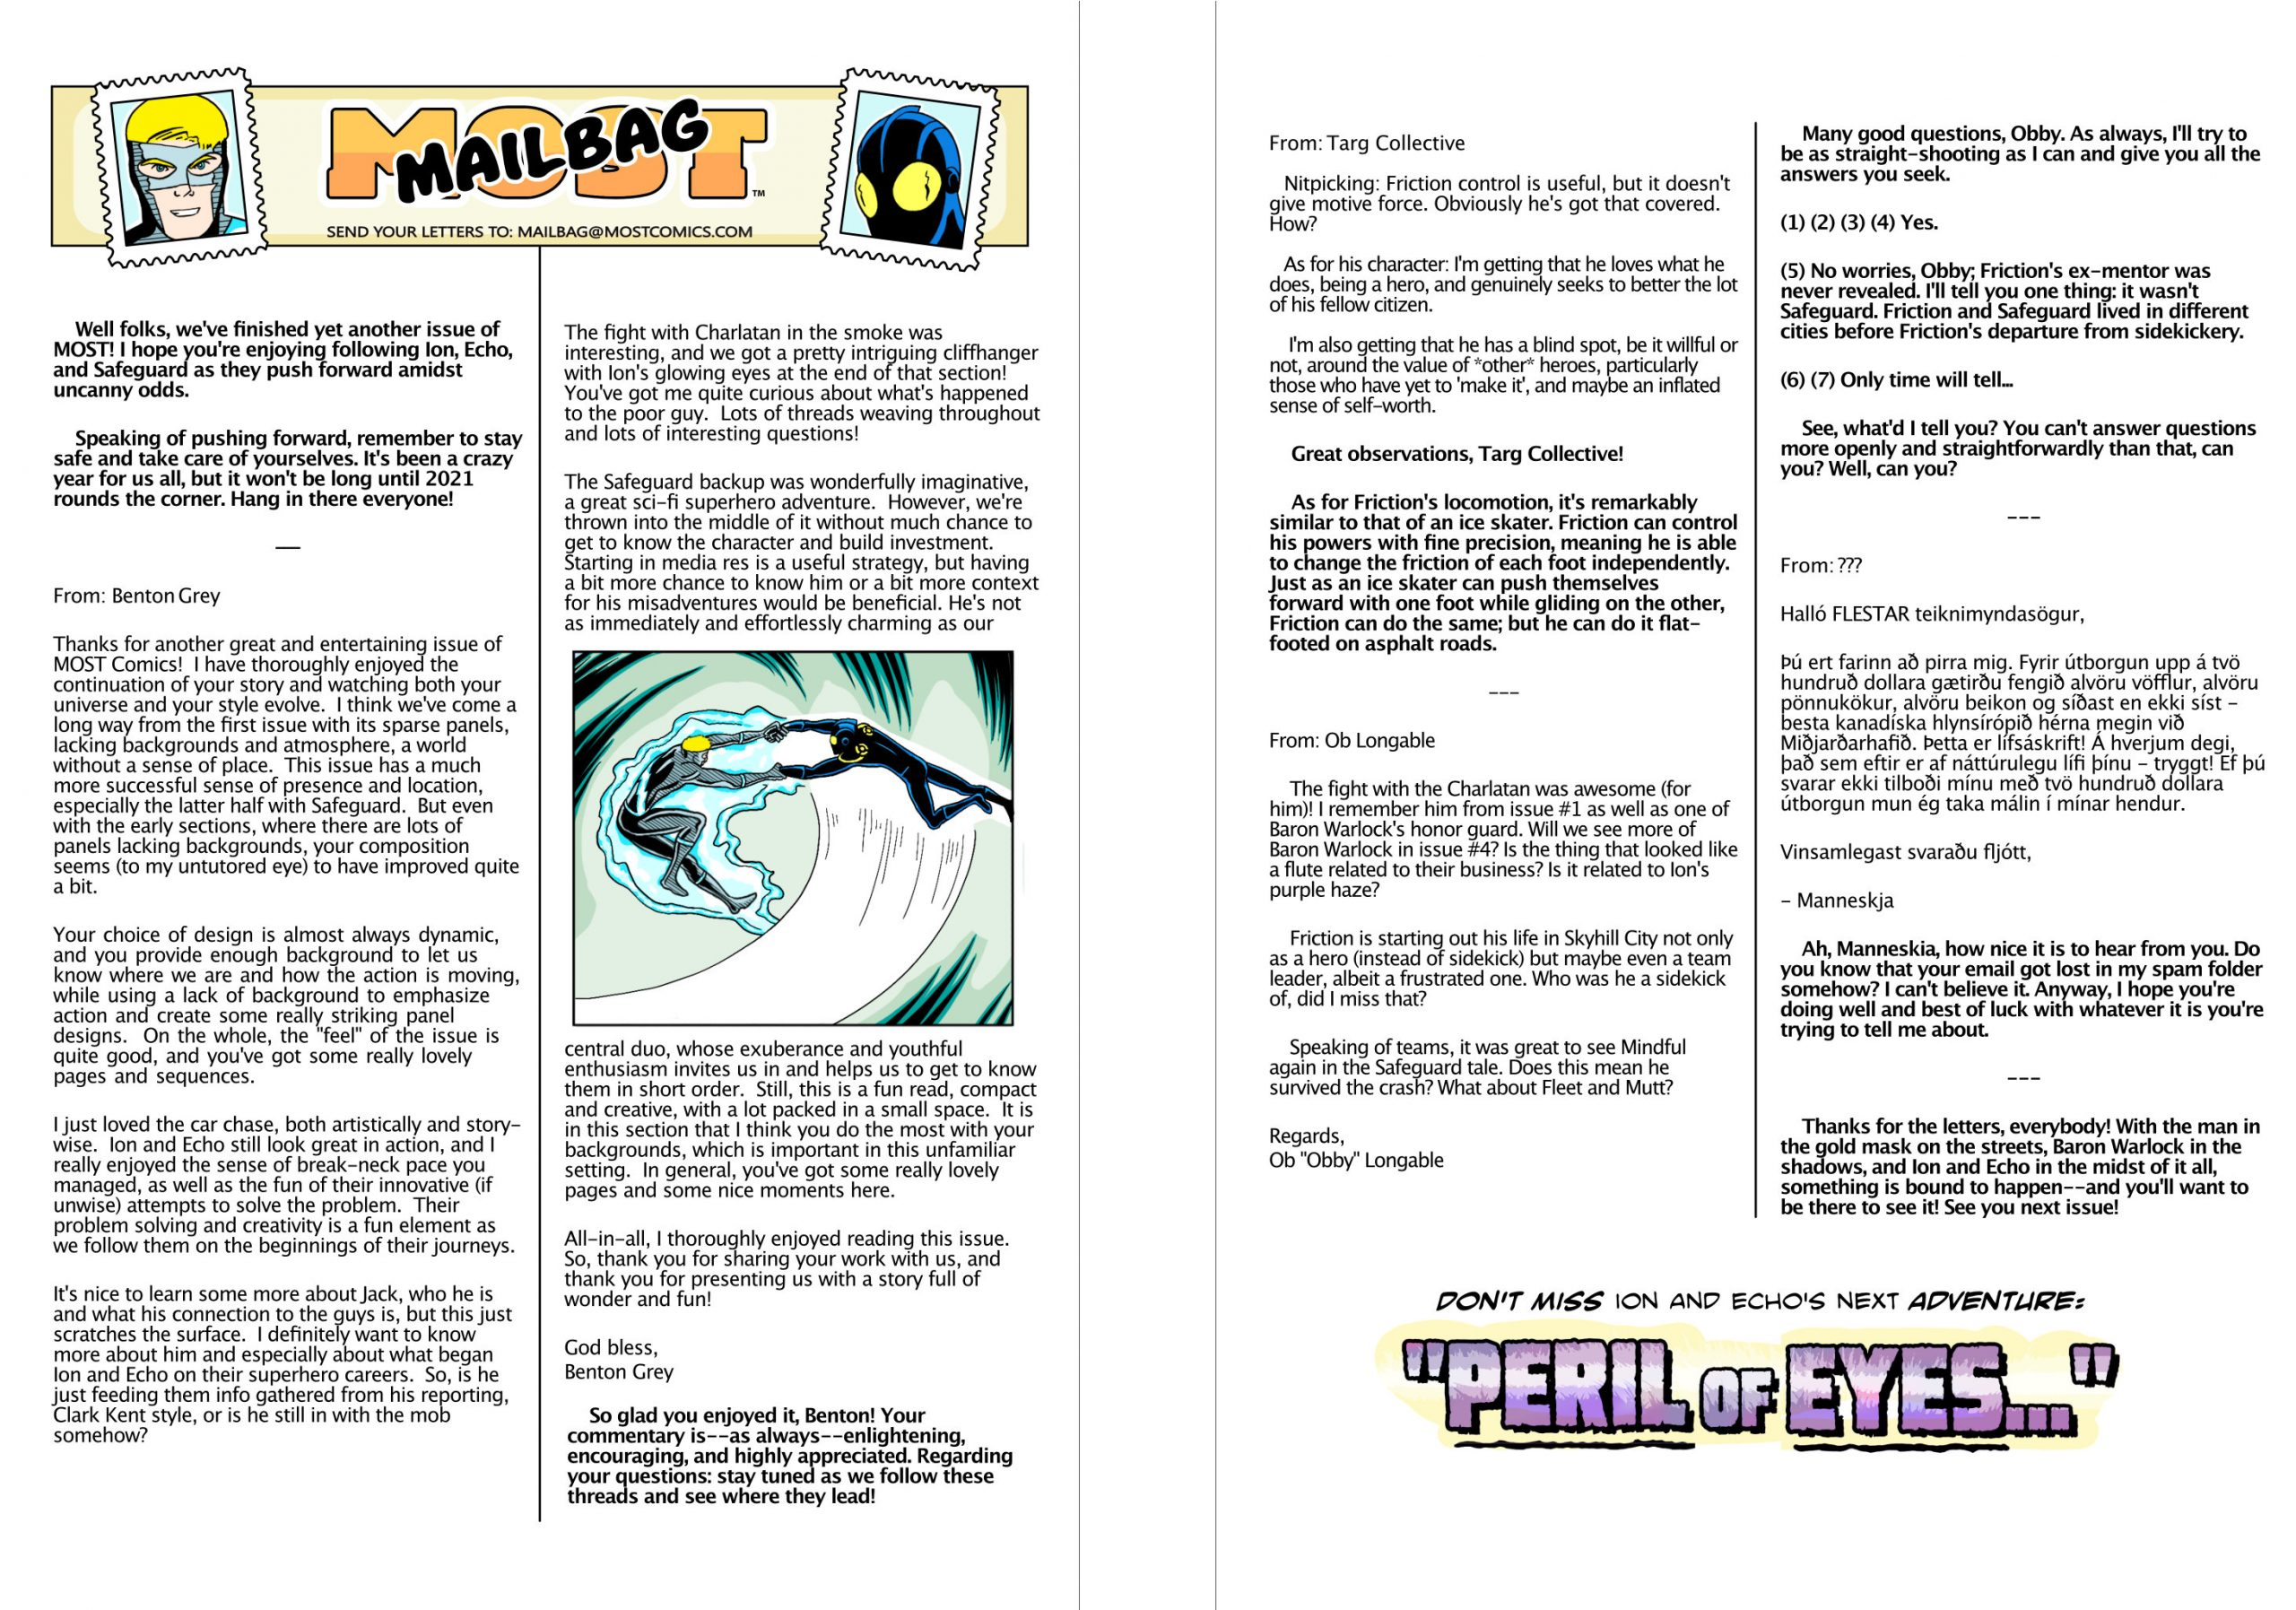 Issue 3 letters page!